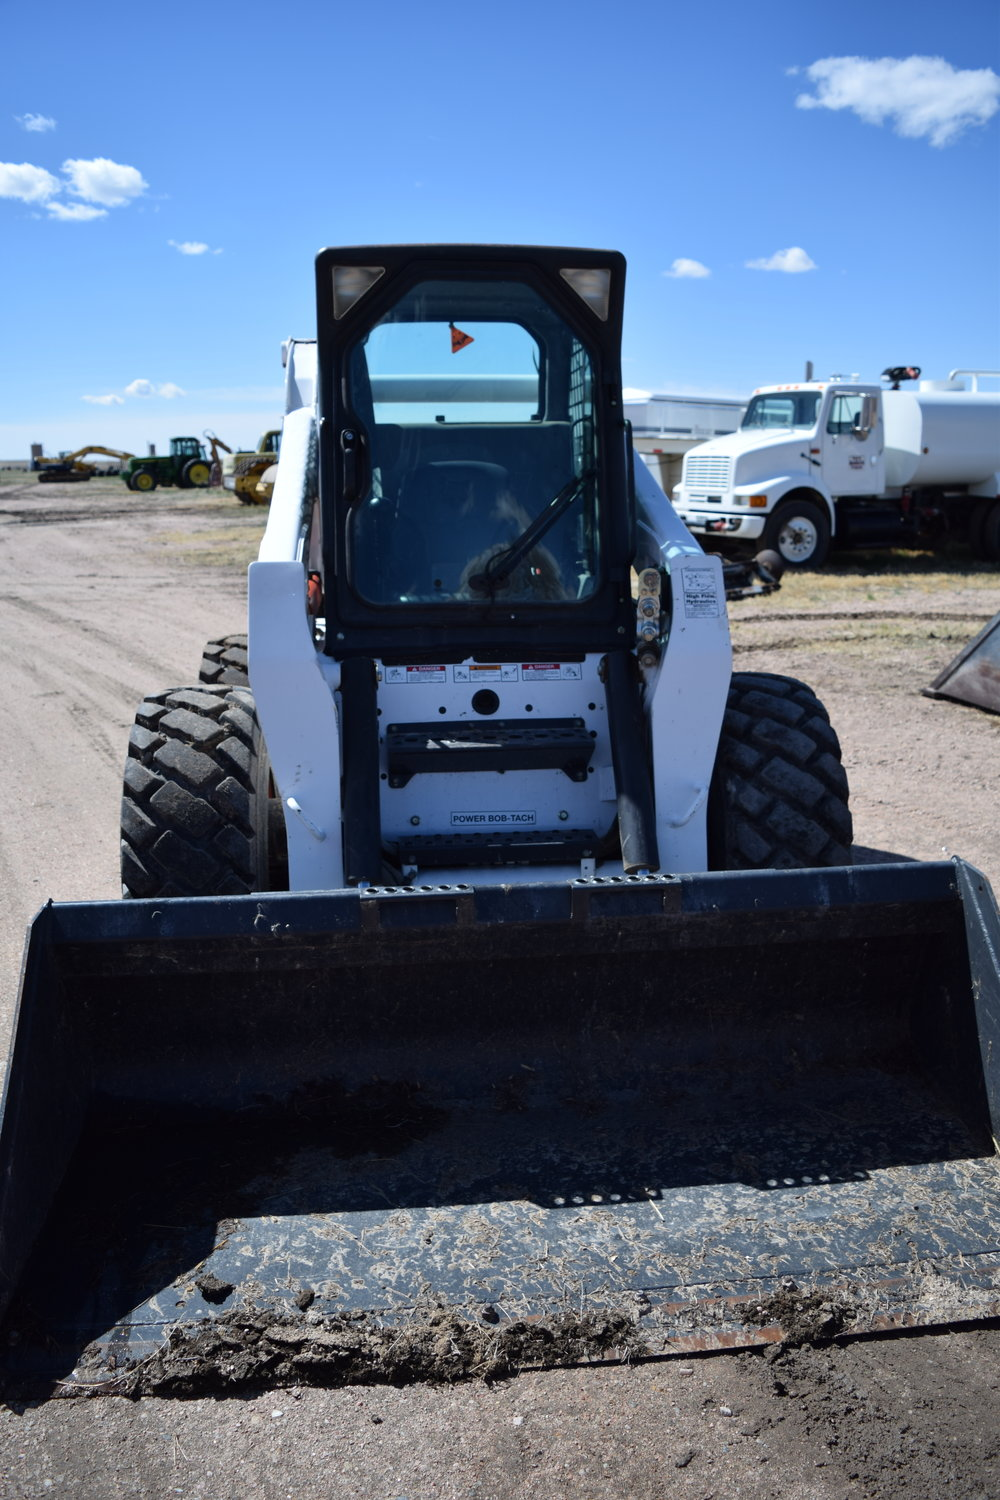 Bobcat S-330 skid str. With material bucket, enclosed cab, heat & A.C., 90% rubber